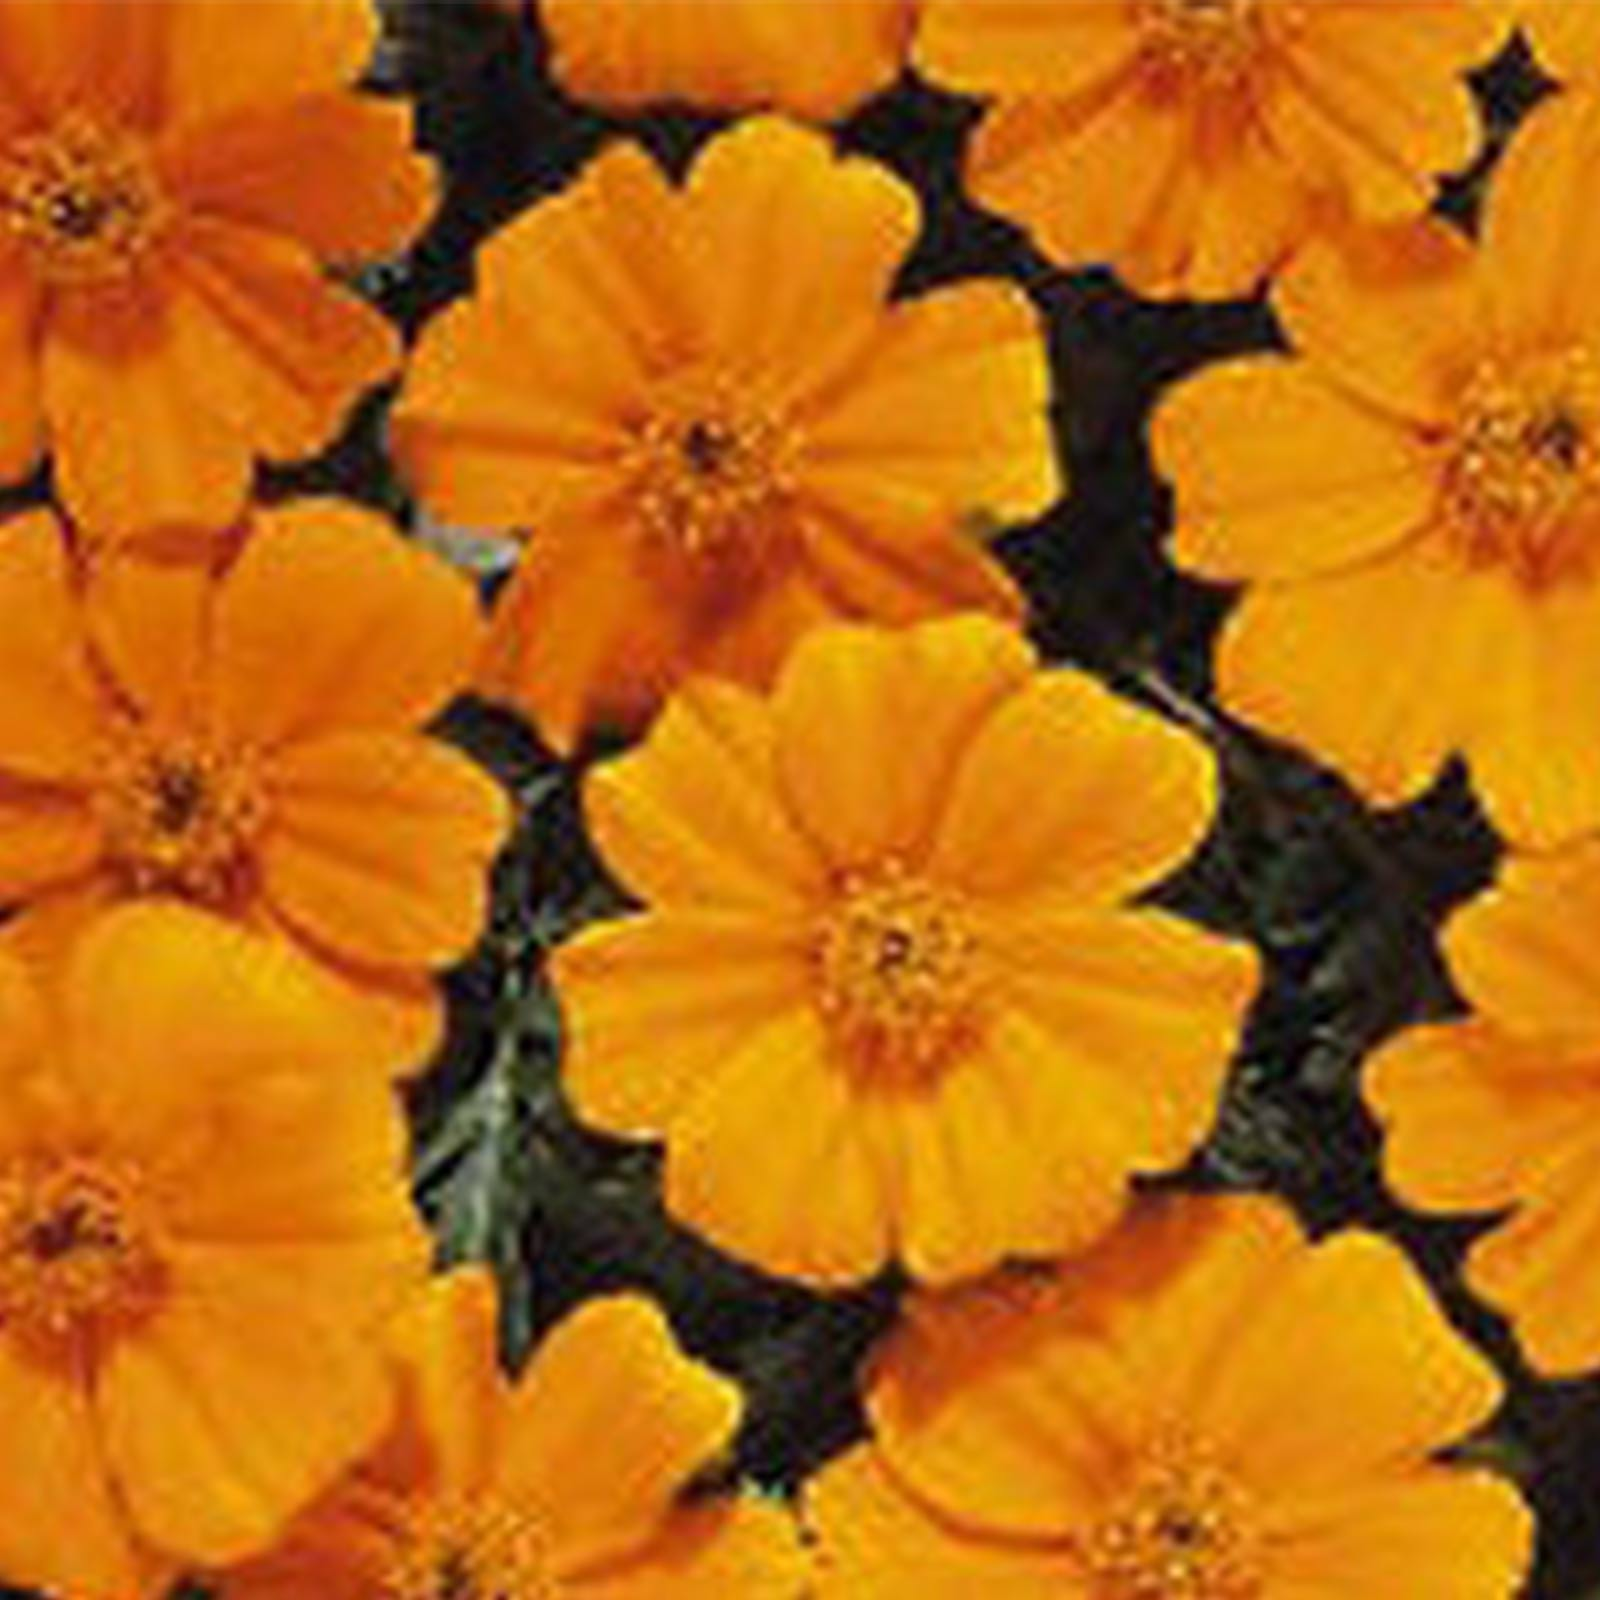 French Marigold Flower Garden Seeds - Disco Series - Marietta - 1000 Seeds - Annual Flower Gardening Seeds - Tagetes patula